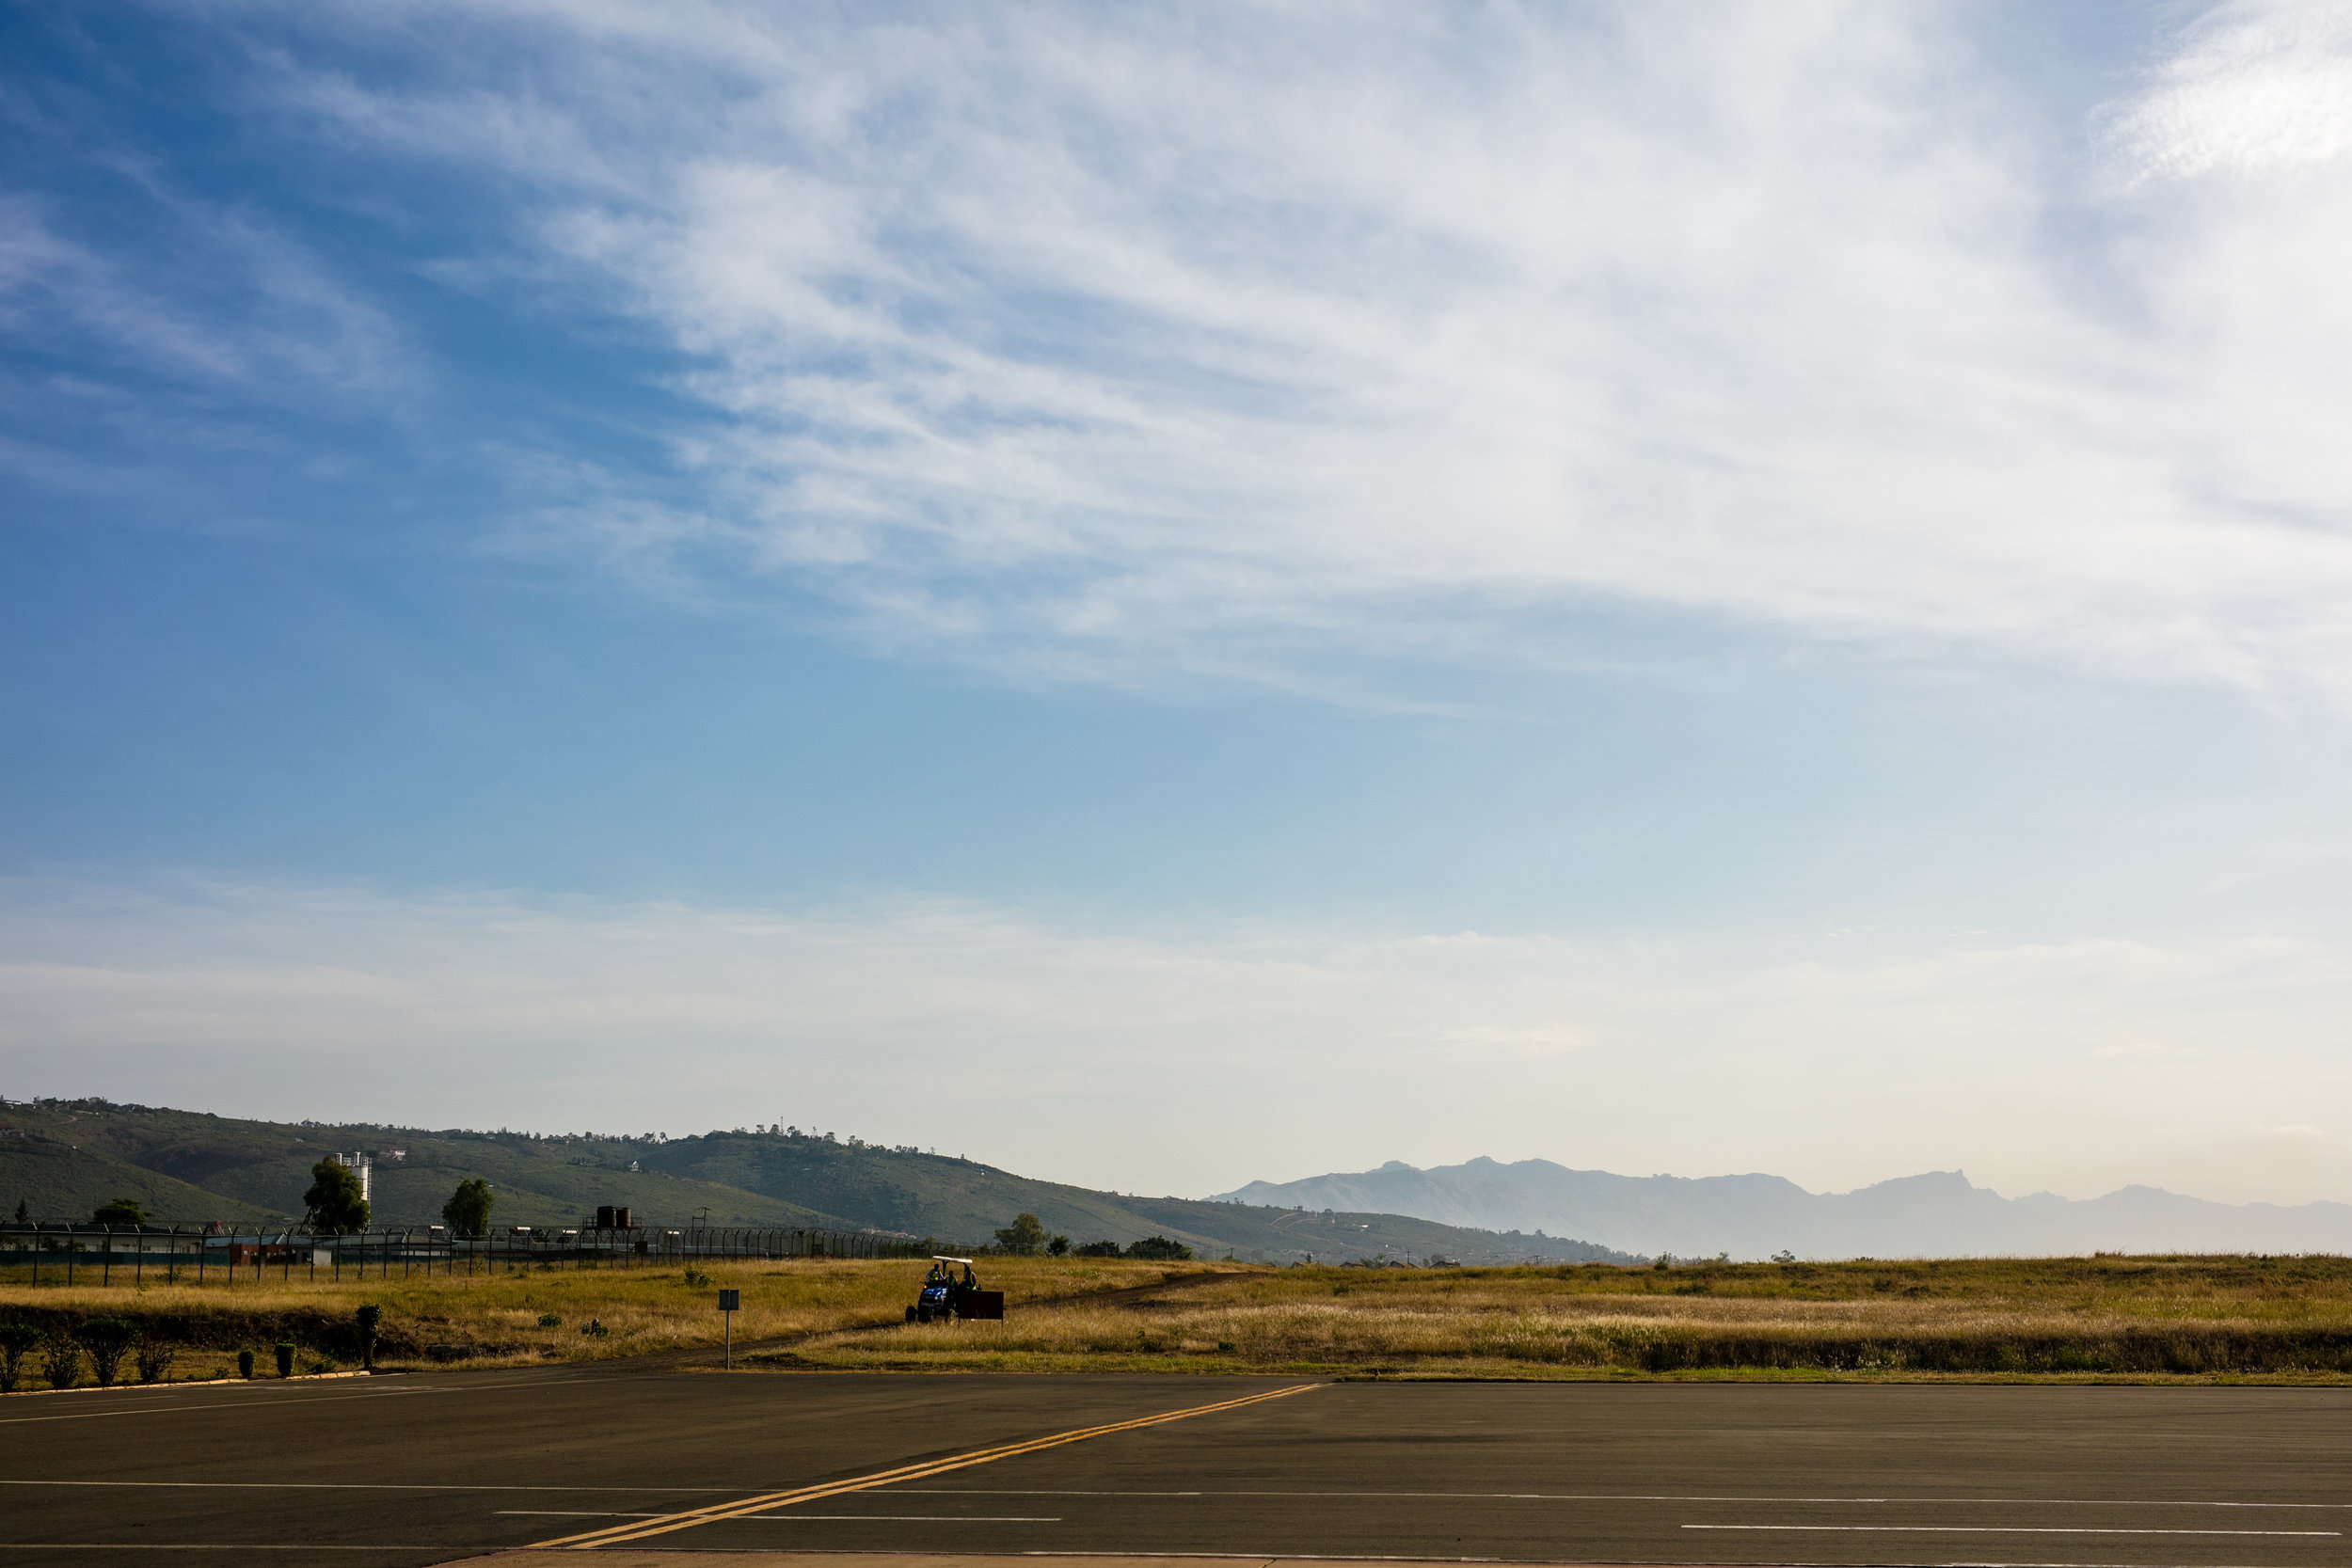 View from the airport